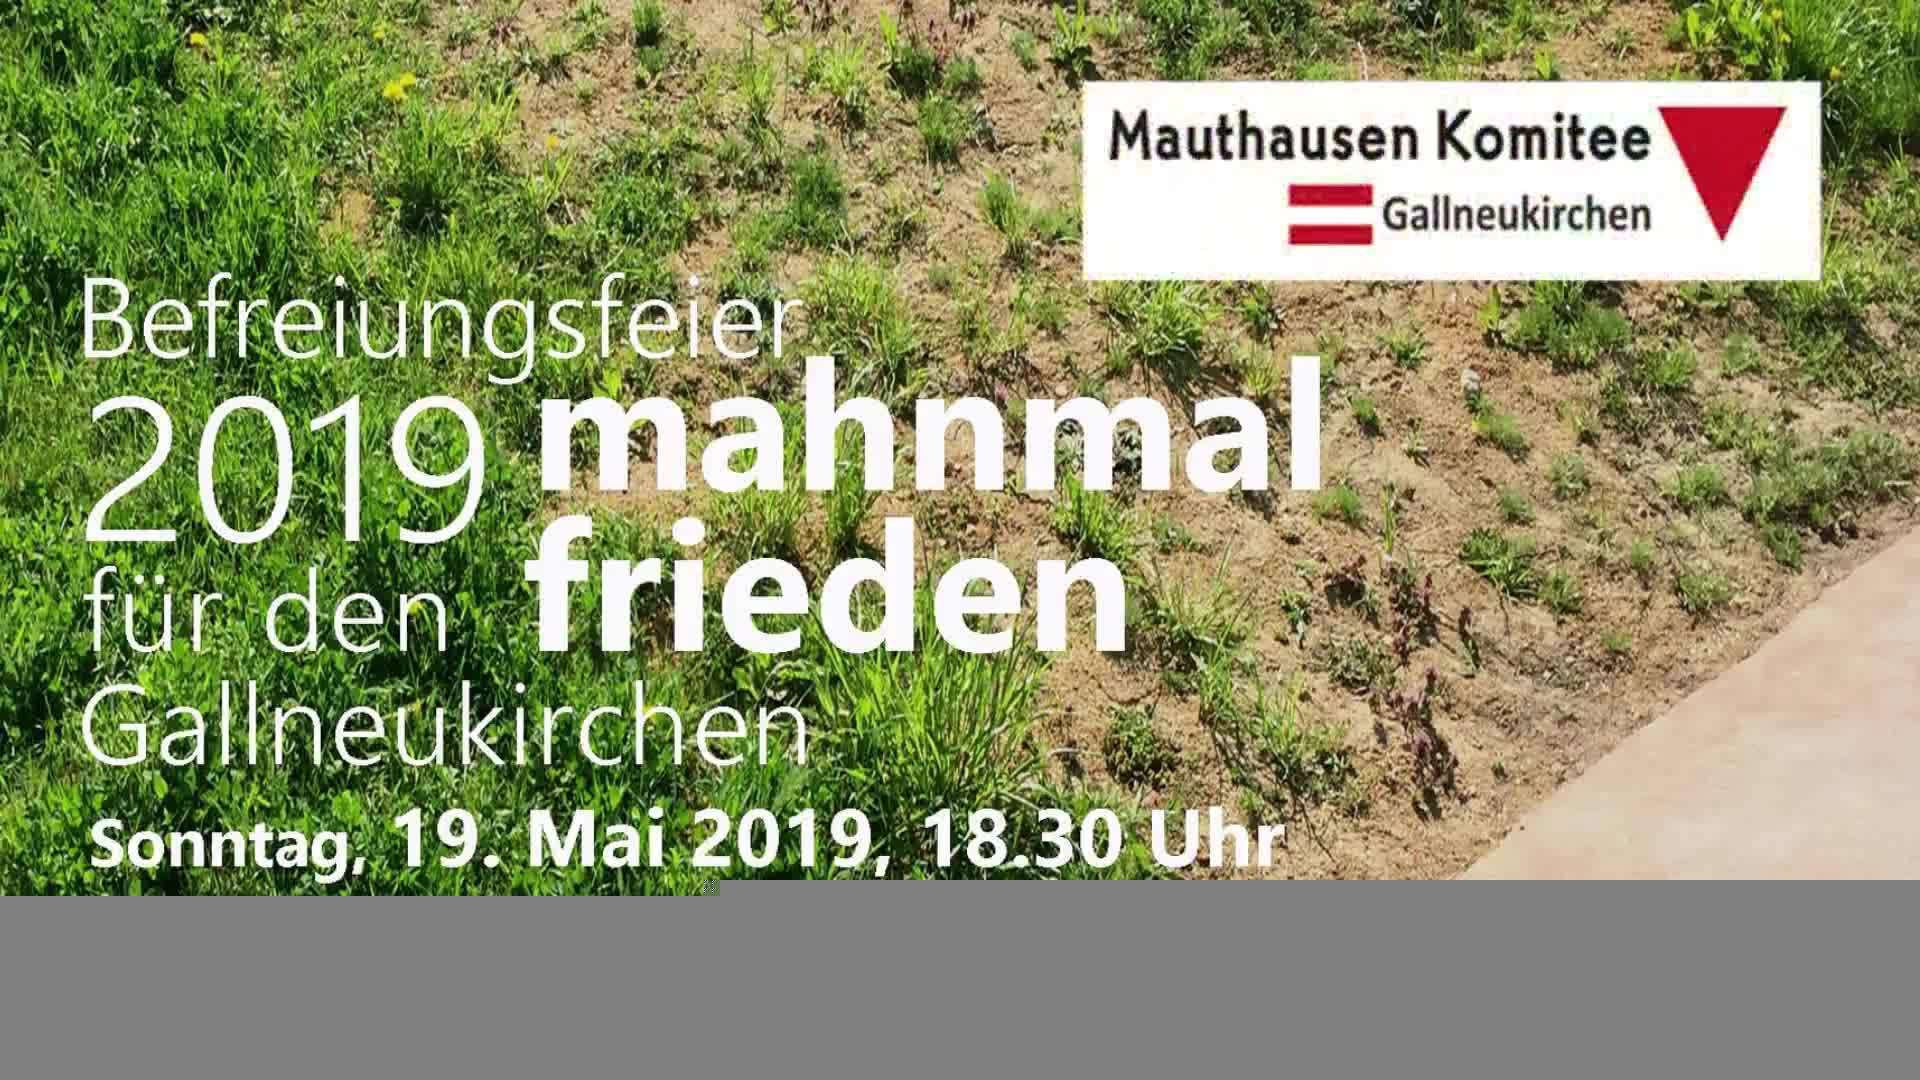 Mahnmalfeier 2019 in Gallneukirchen